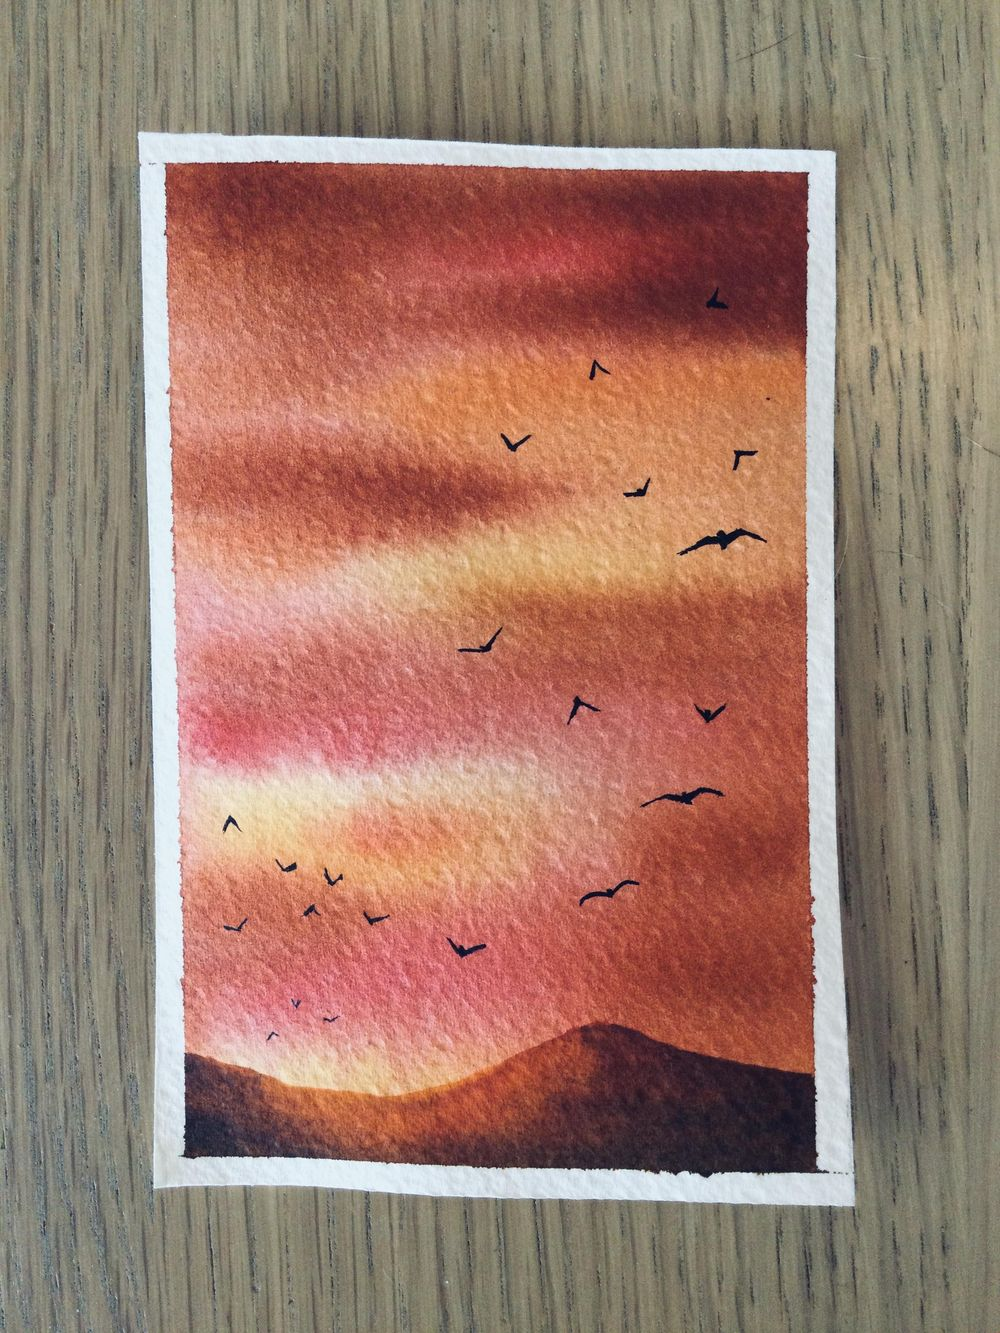 birds in the sky - image 13 - student project